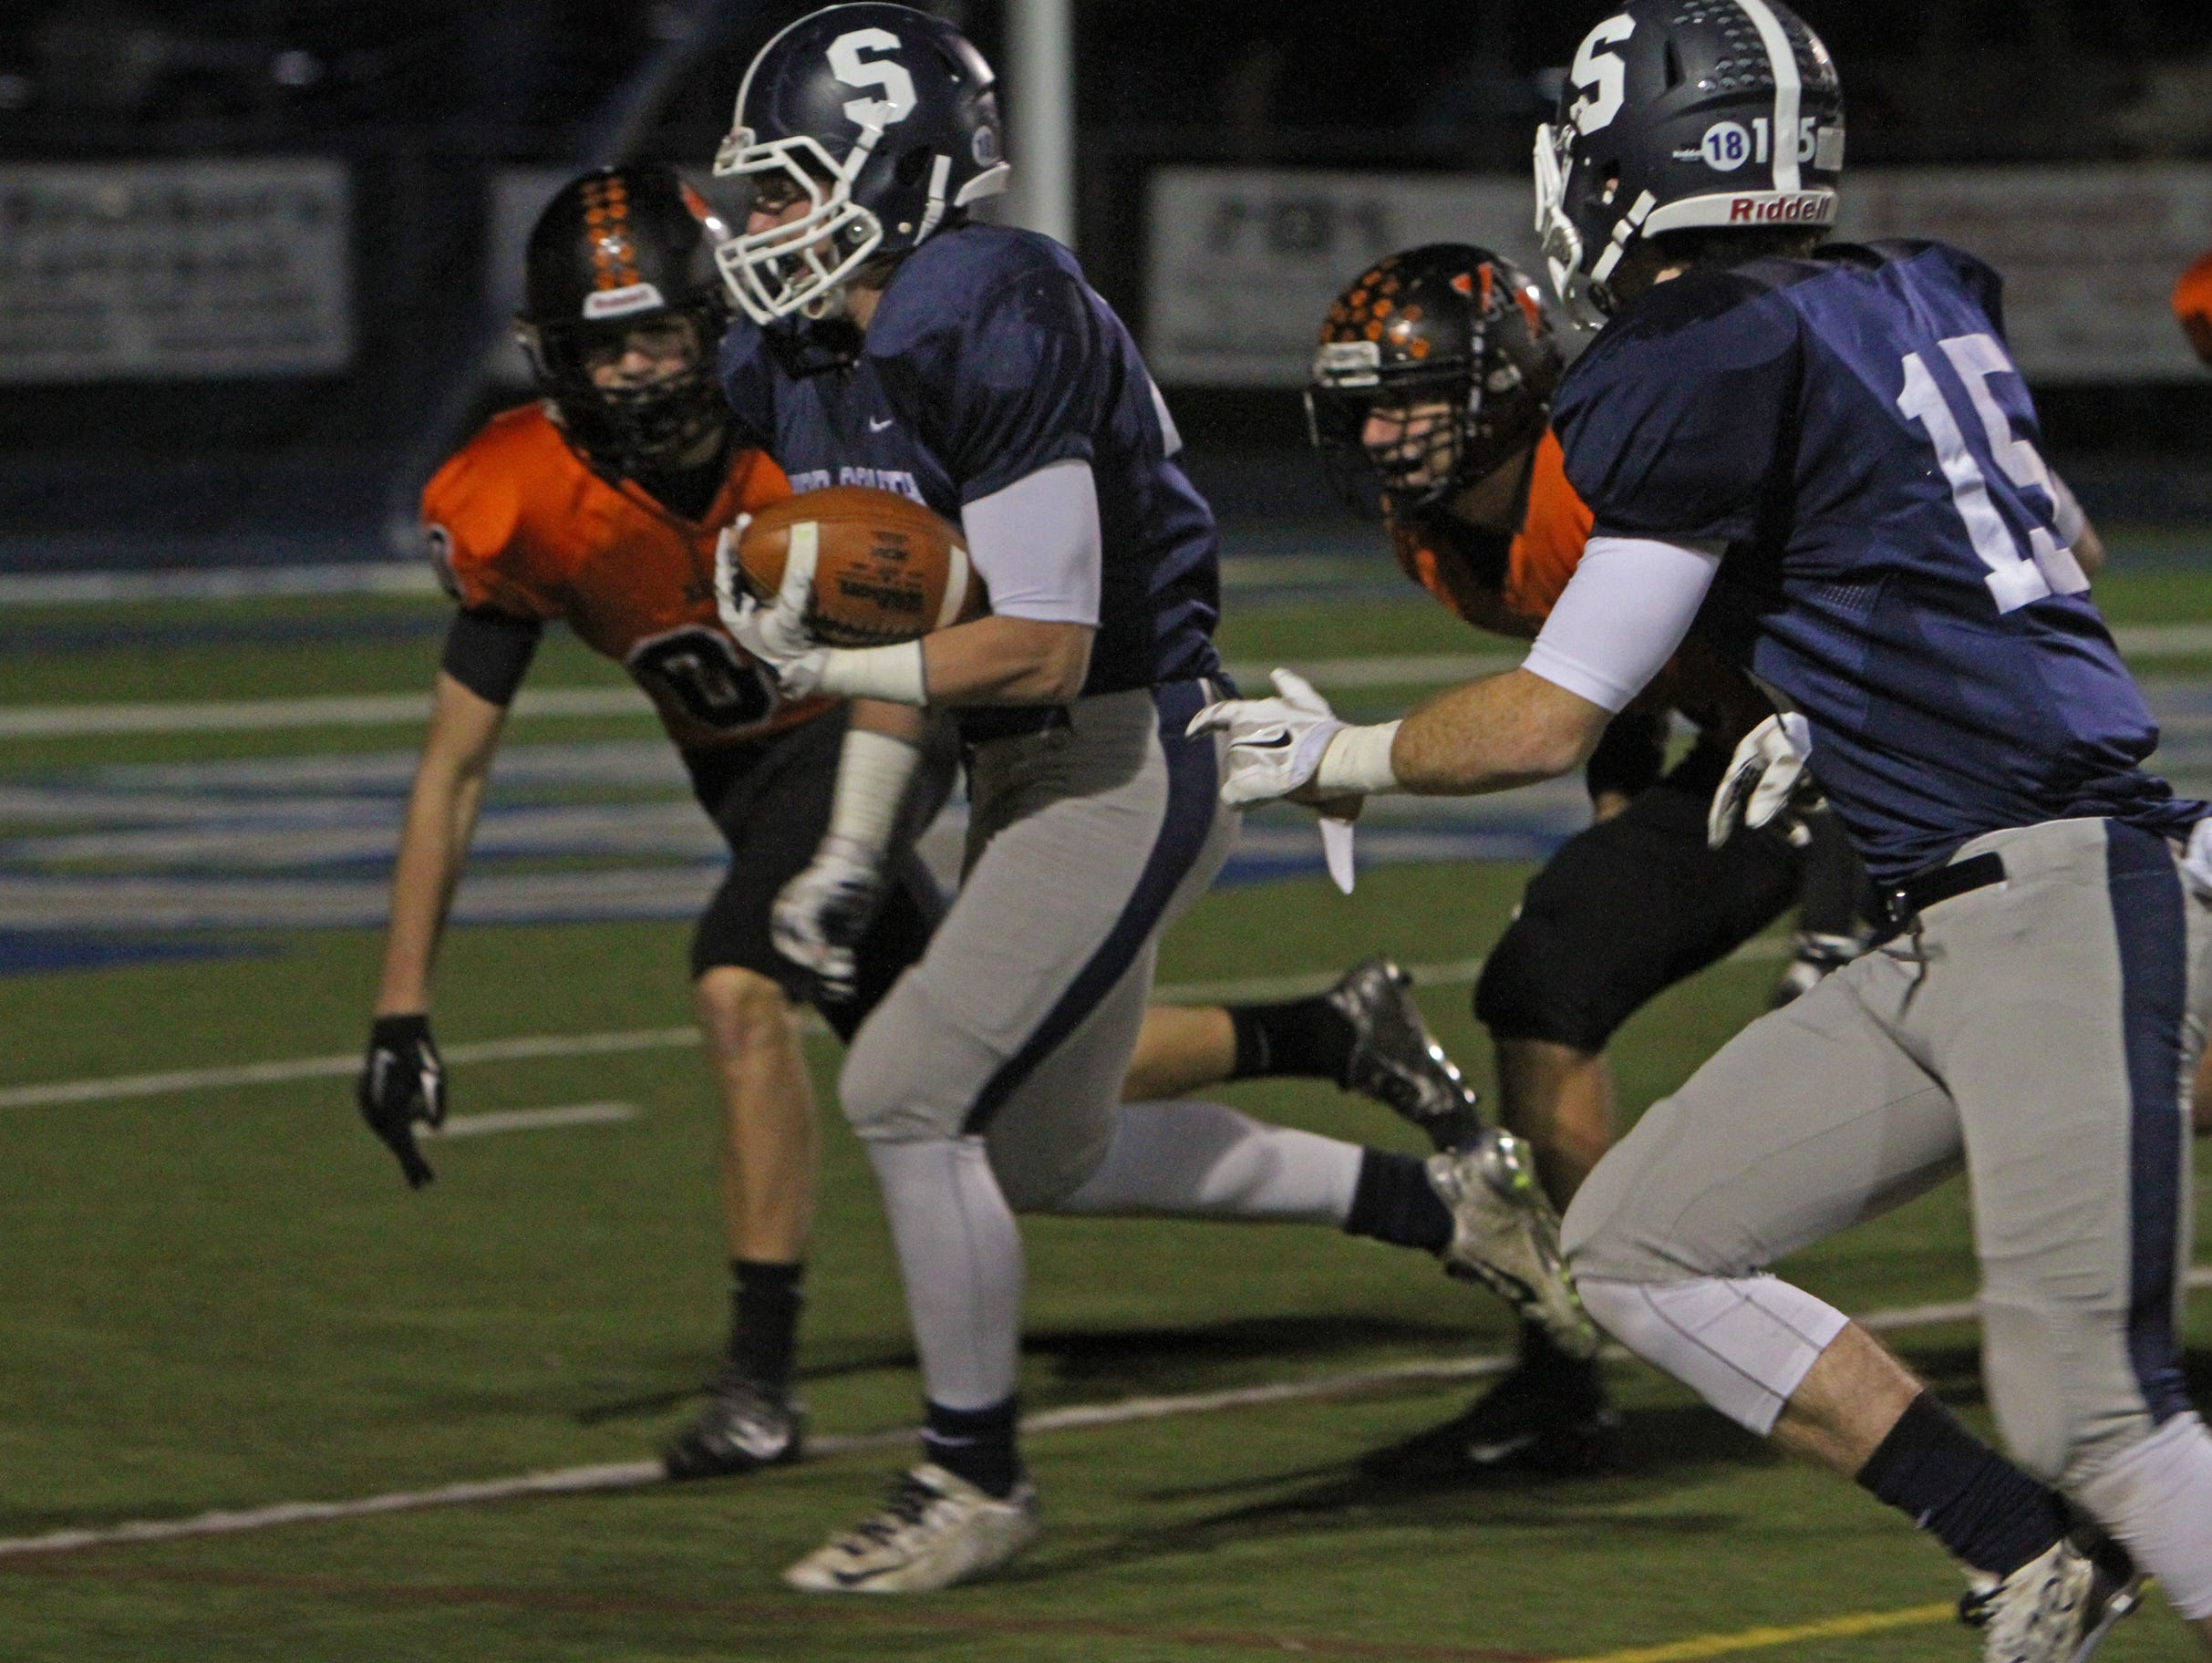 Middletown South, with senior running back Cole Rogers playing a key role, is still ranked No. 1 in the Asbury Park Press Top 10